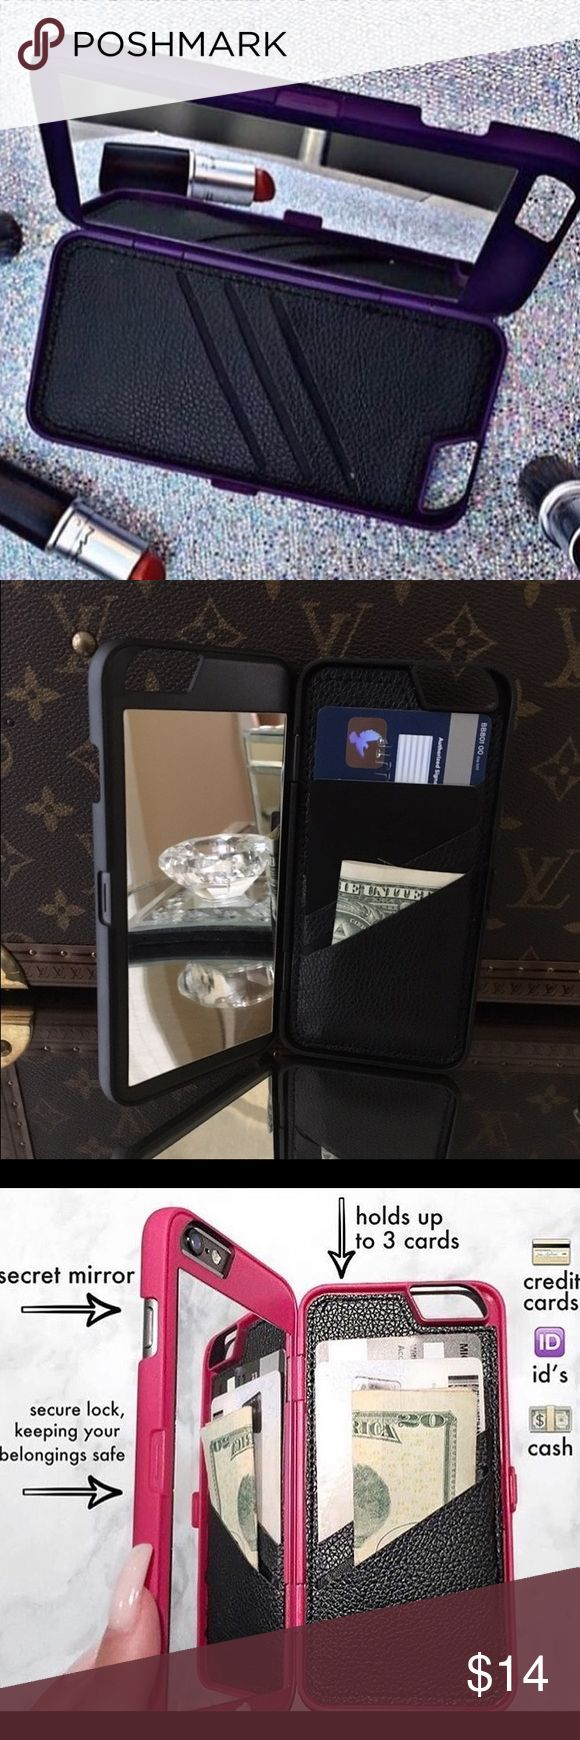 ✨BRAND NEW✨ Secret Mirror & Wallet  Case Pink The perfect iPhone case to store your cards and ID's!✨ Enclosed with a secret mirror so you can check your make up! Also Holds Credit Cards, ID's and cash comfortably. Protects the back and sides of your phone. Available for iPhone 6/6S in PINK. Brand new! No Trade! Price is firm Accessories Phone Cases